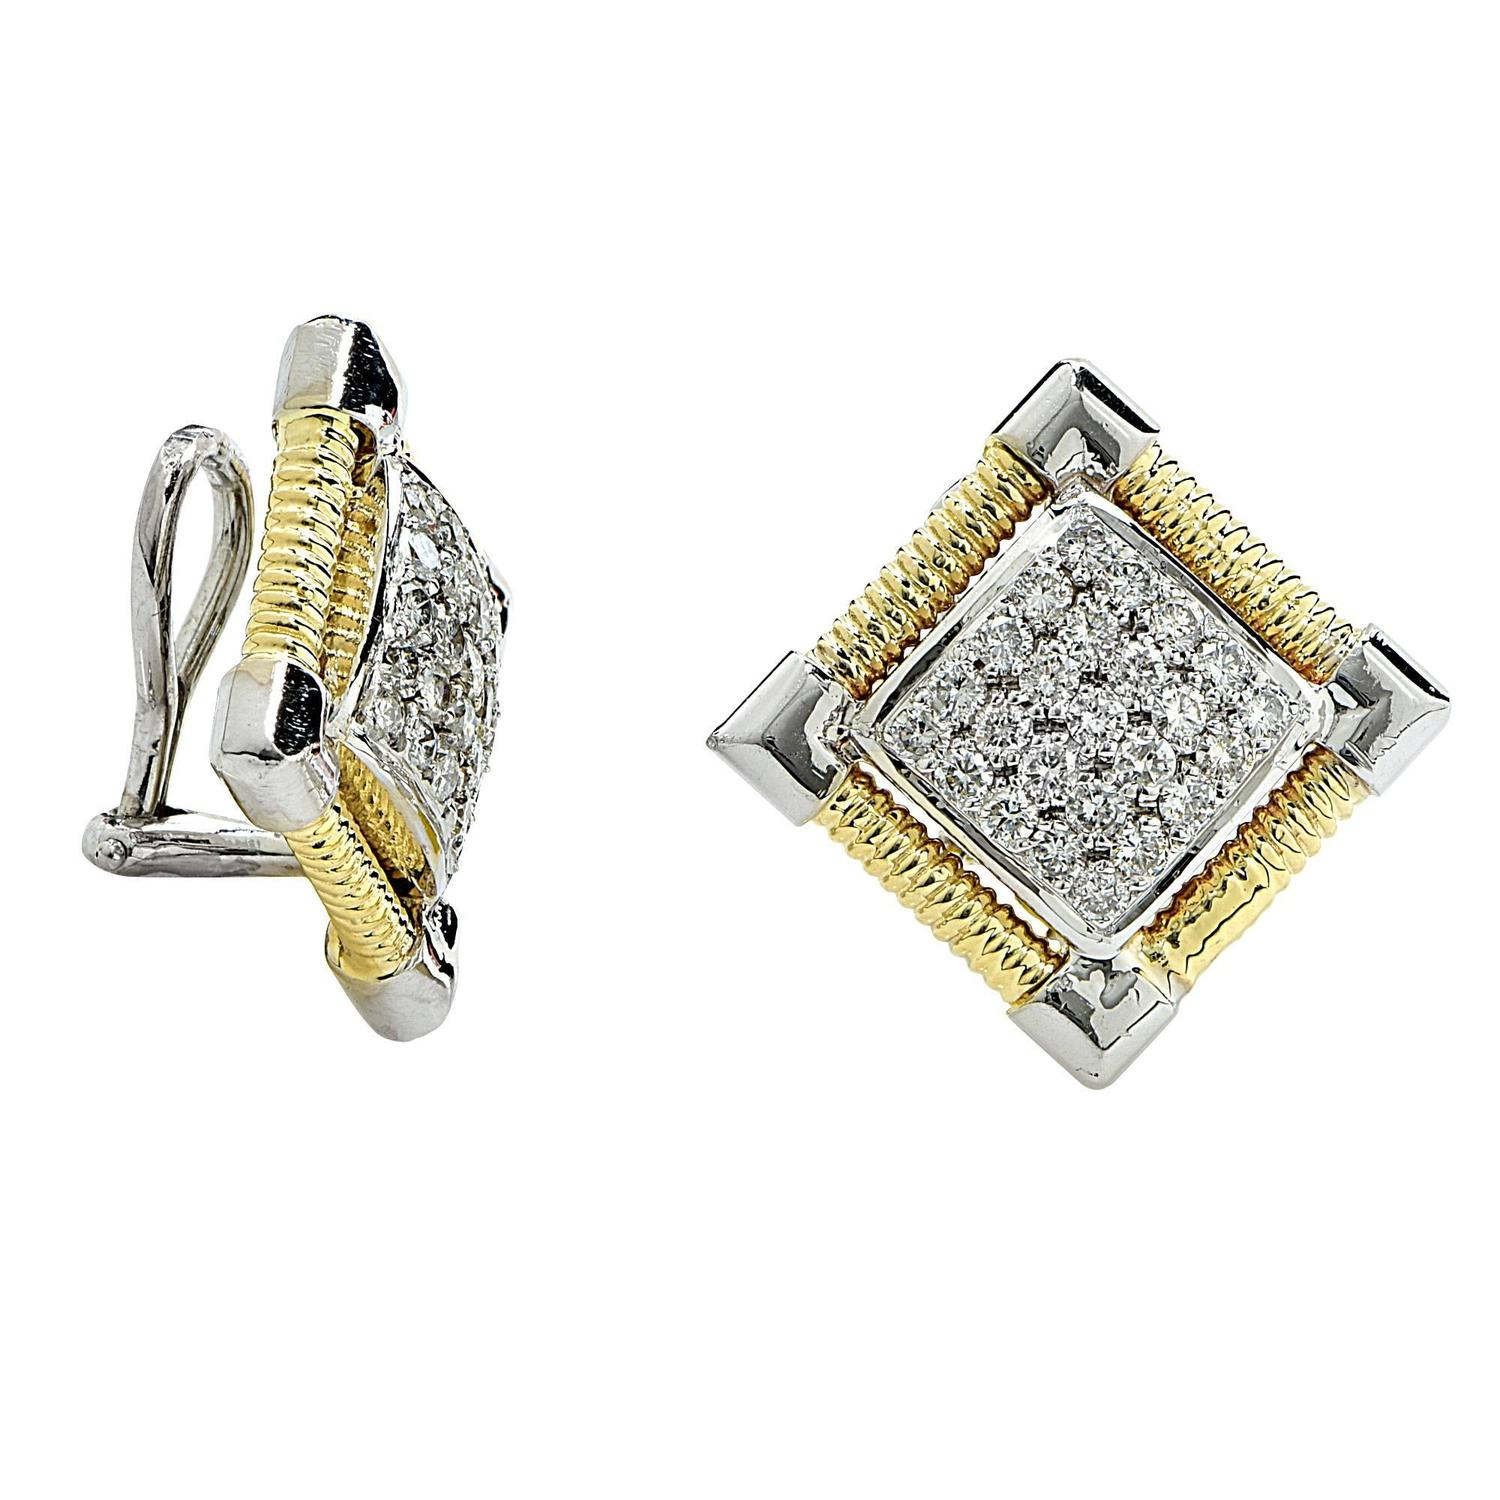 1 carat stud earrings sale 1 15 carat gold stud earrings for sale at 1stdibs 5986